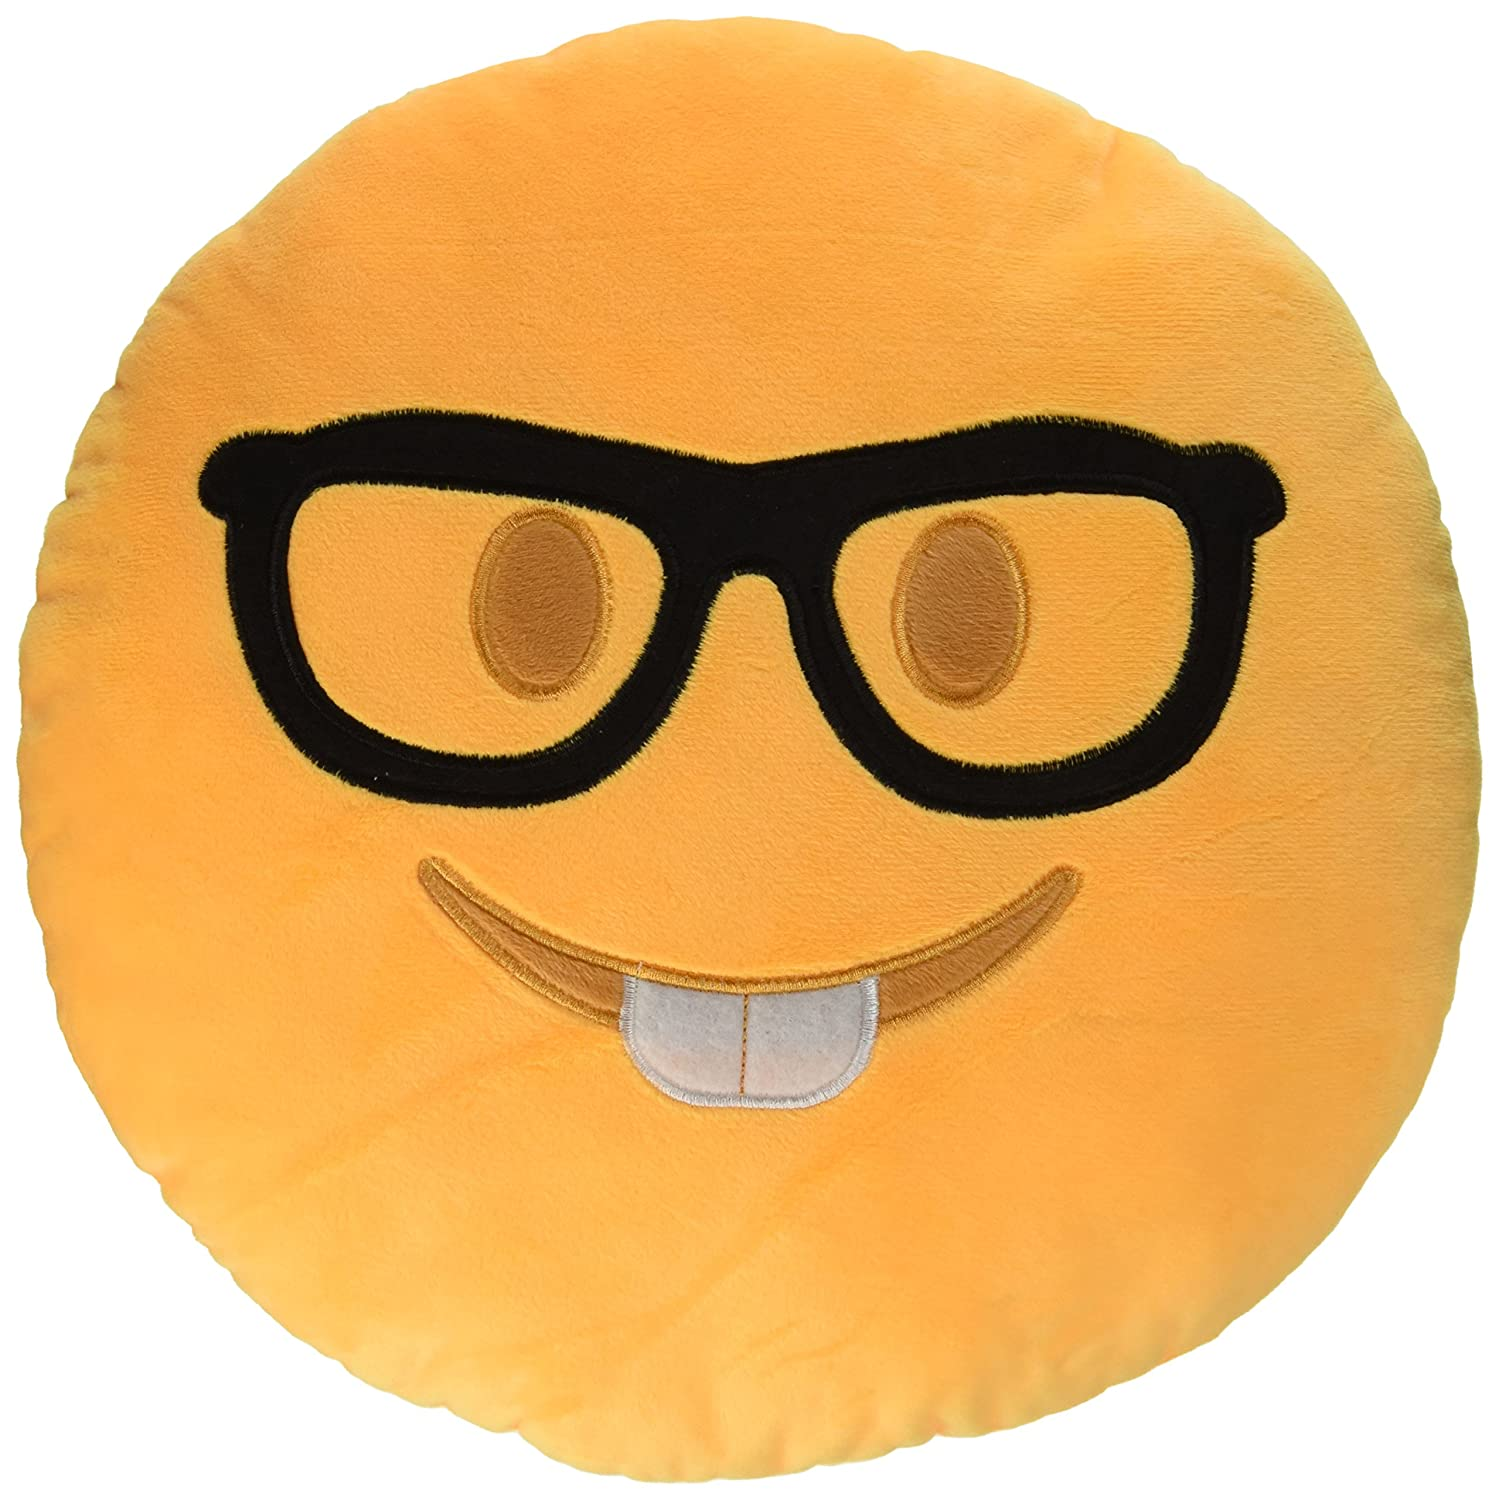 Amazon.com: 2 PACK - Nerd Face and Lady Nerd Emoji Pillow Emoticon Stuffed Plush Toy Doll Smiley (NERD FACE + LADY NERD) : Home & Kitchen